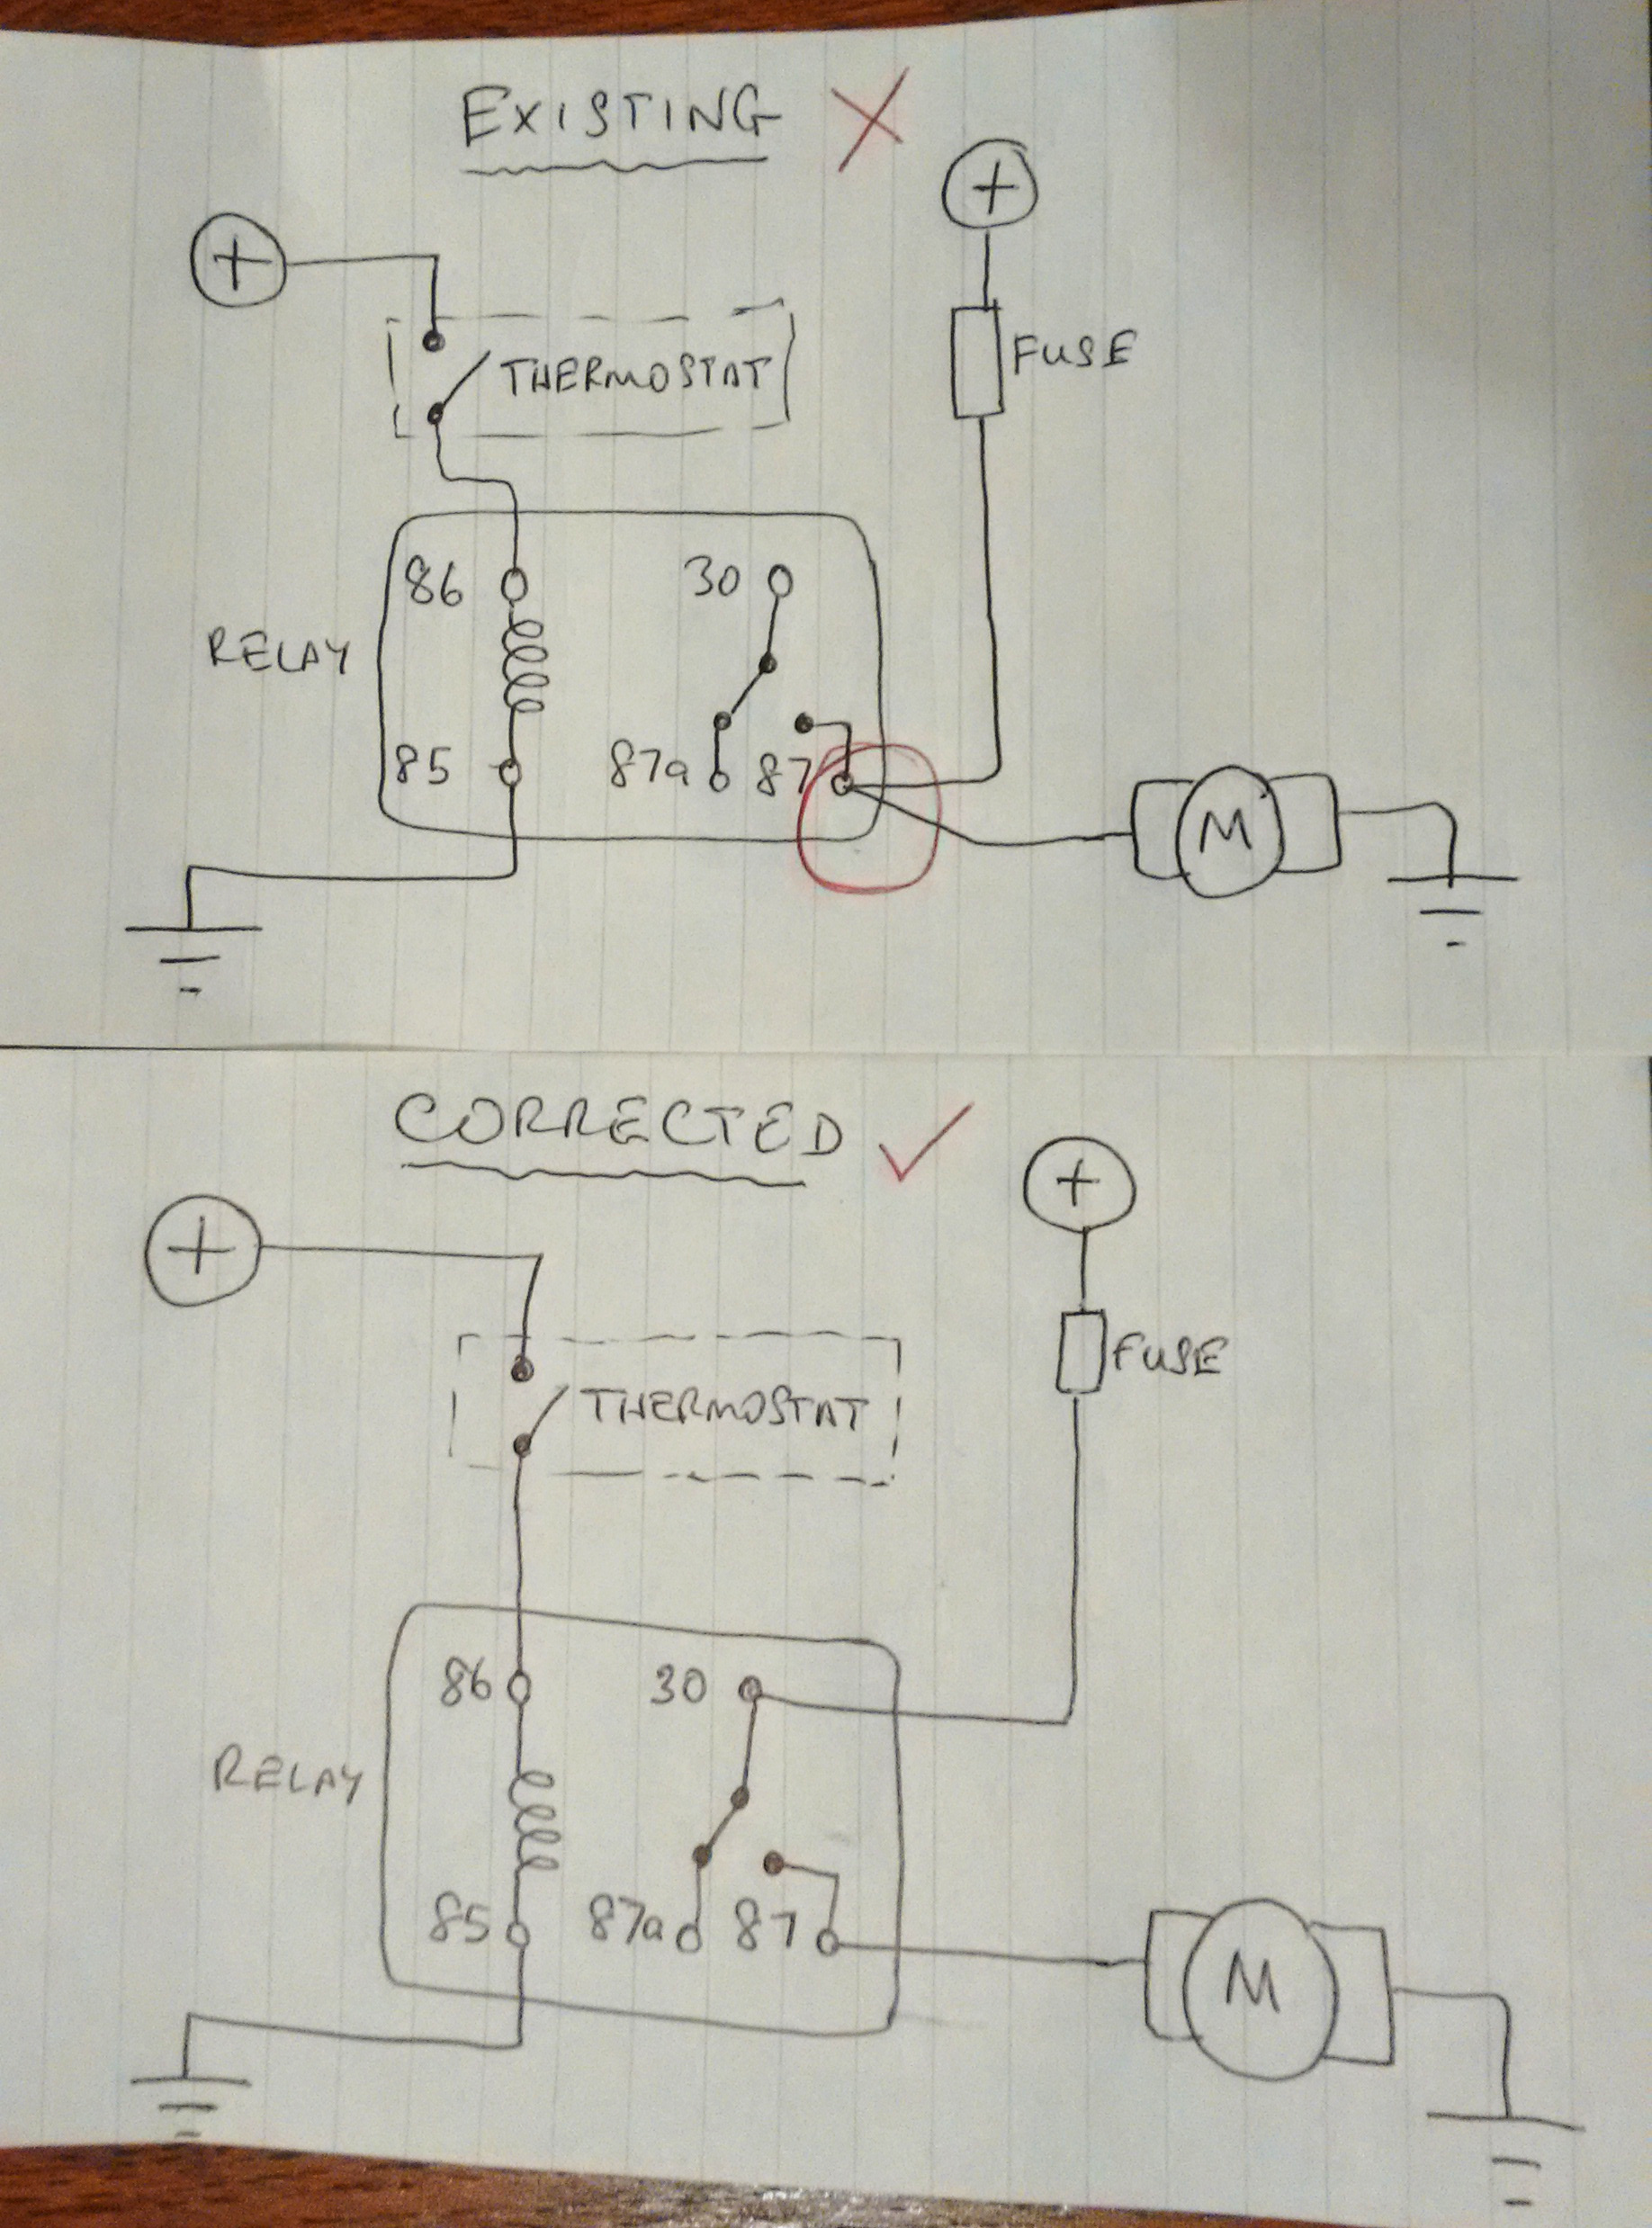 Wiring Diagram Capillary Thermostat Carrier Heat Pump Eaton Oven Kenlowe Fan Series 3 Land Rover Ramblings Heating Placement